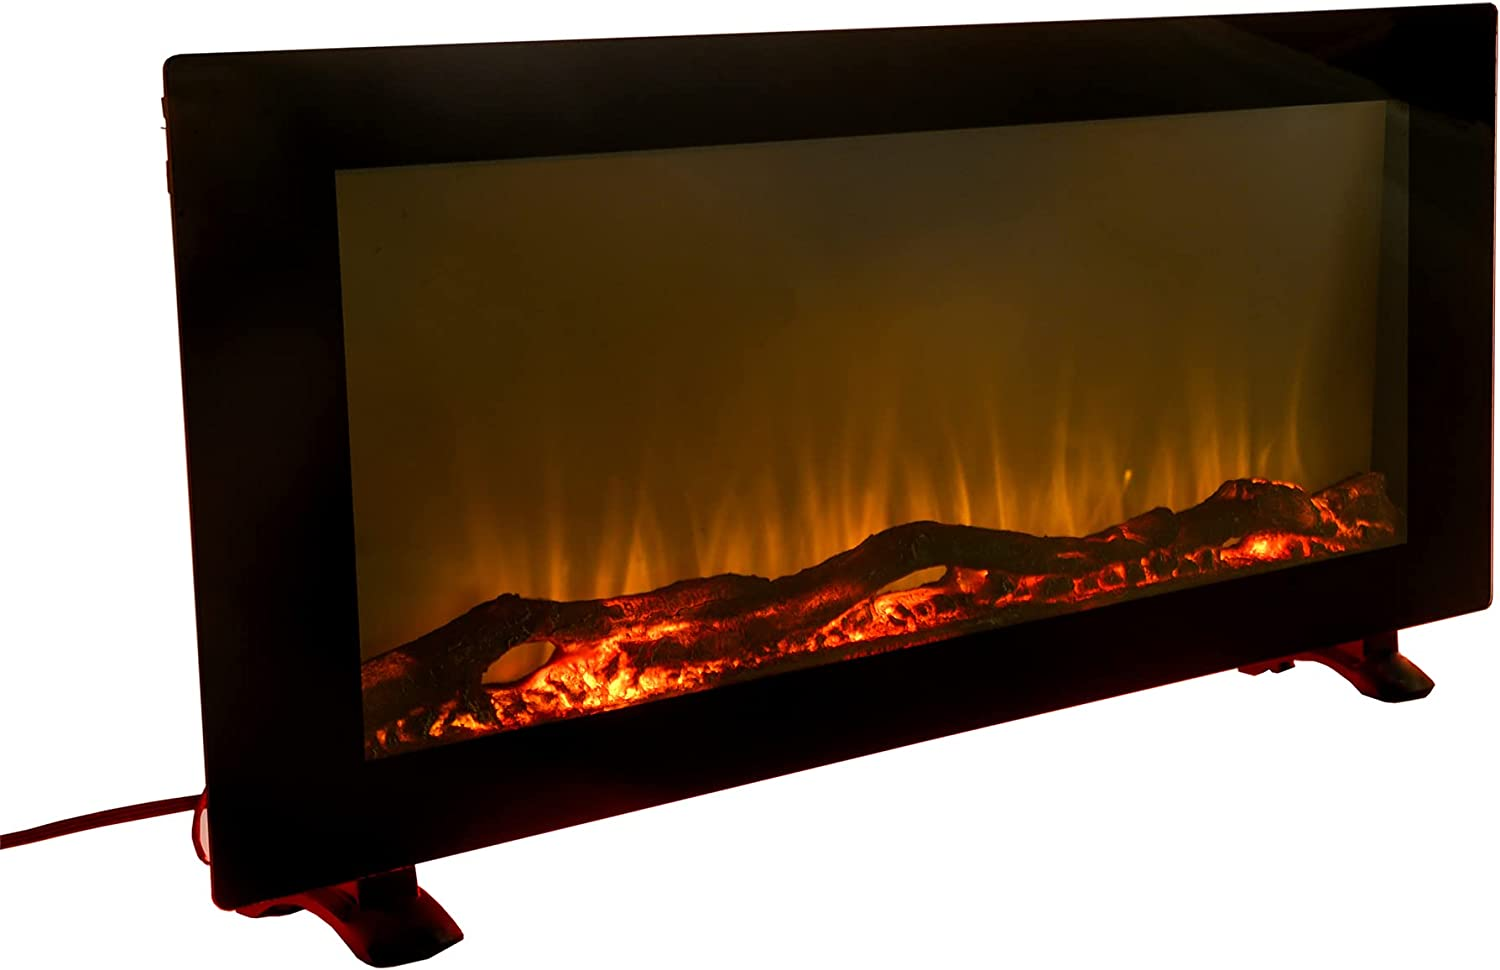 AOBOLAN Design The Sale Special Price Sideline Electric Fireplace Inch Tampa Mall 42 - Wide